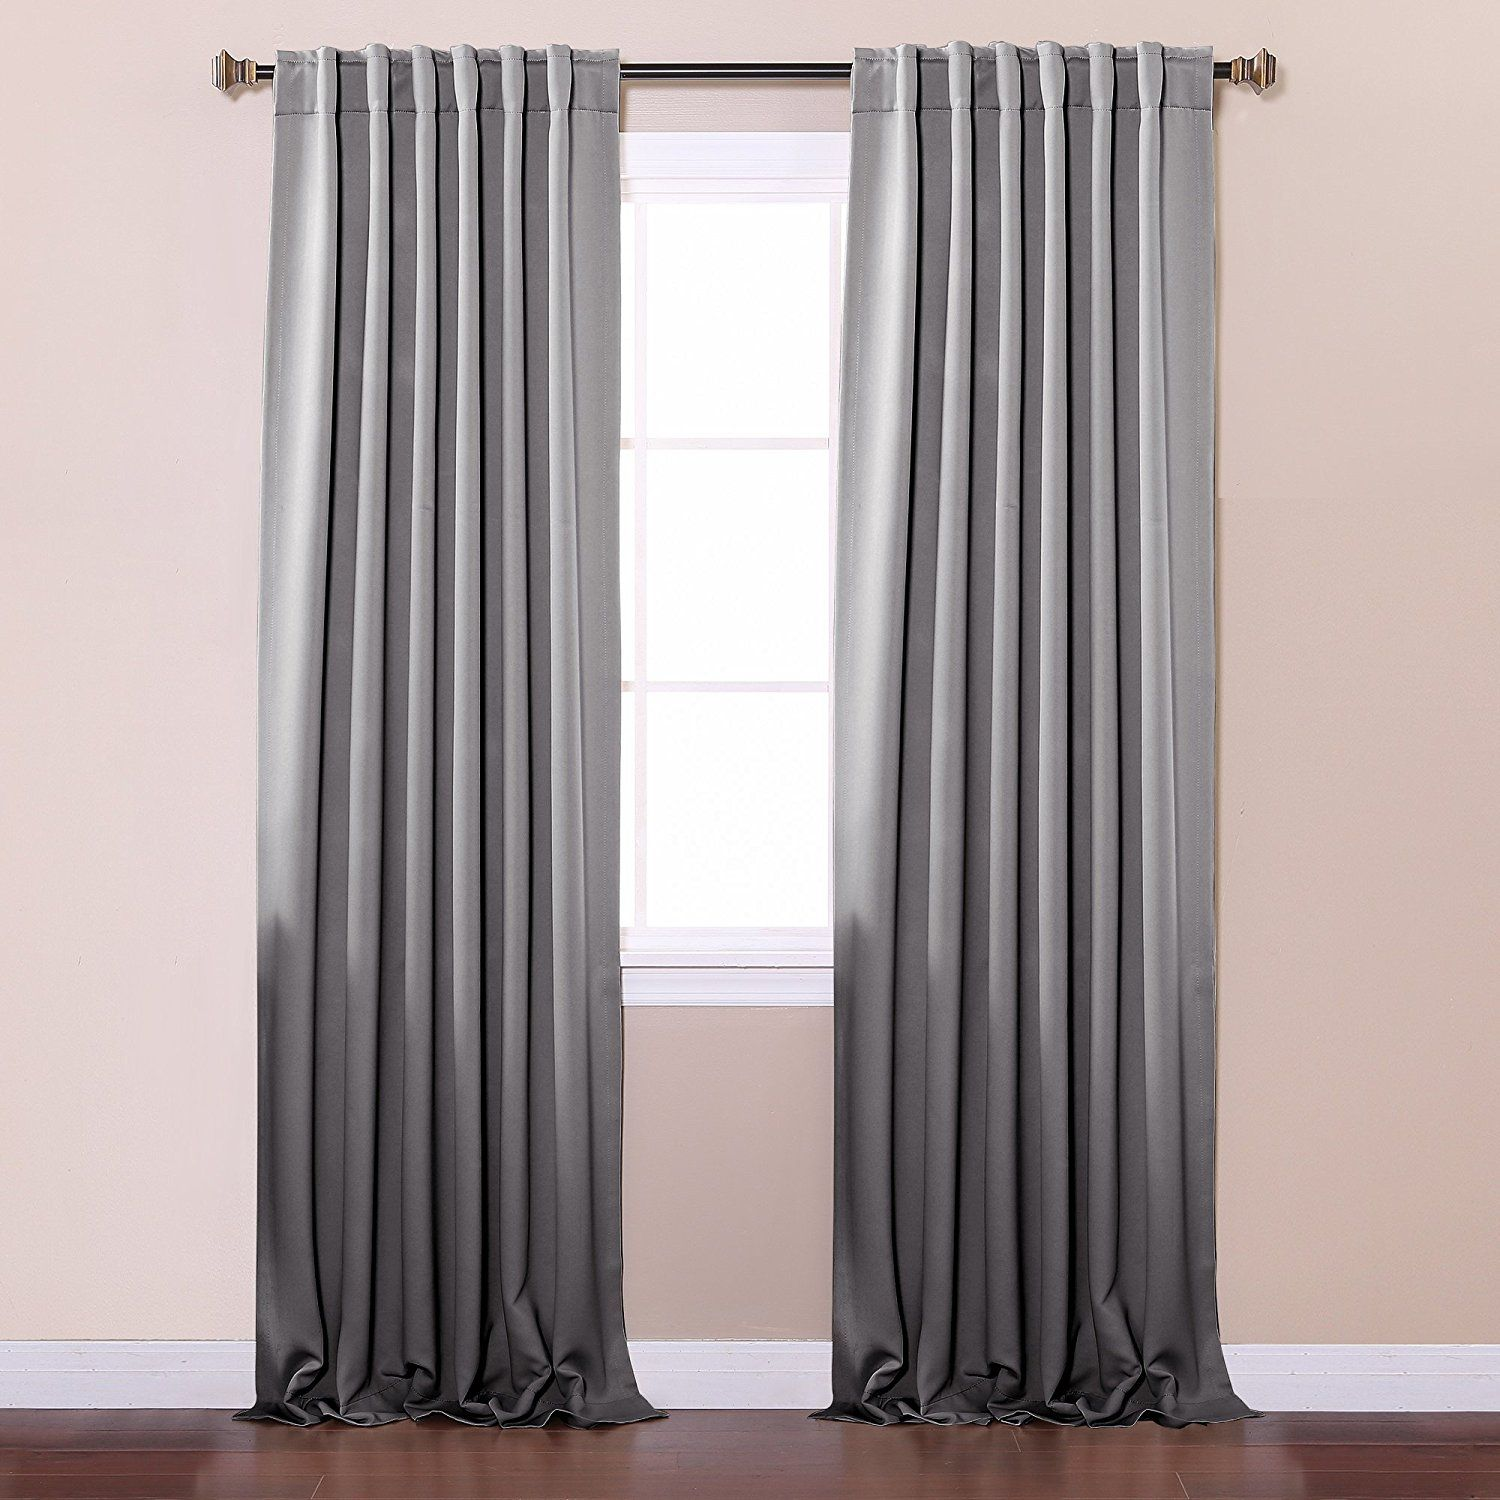 Thermal curtains grey - Amazon Com Best Home Fashion Thermal Insulated Blackout Curtains Back Tab Rod